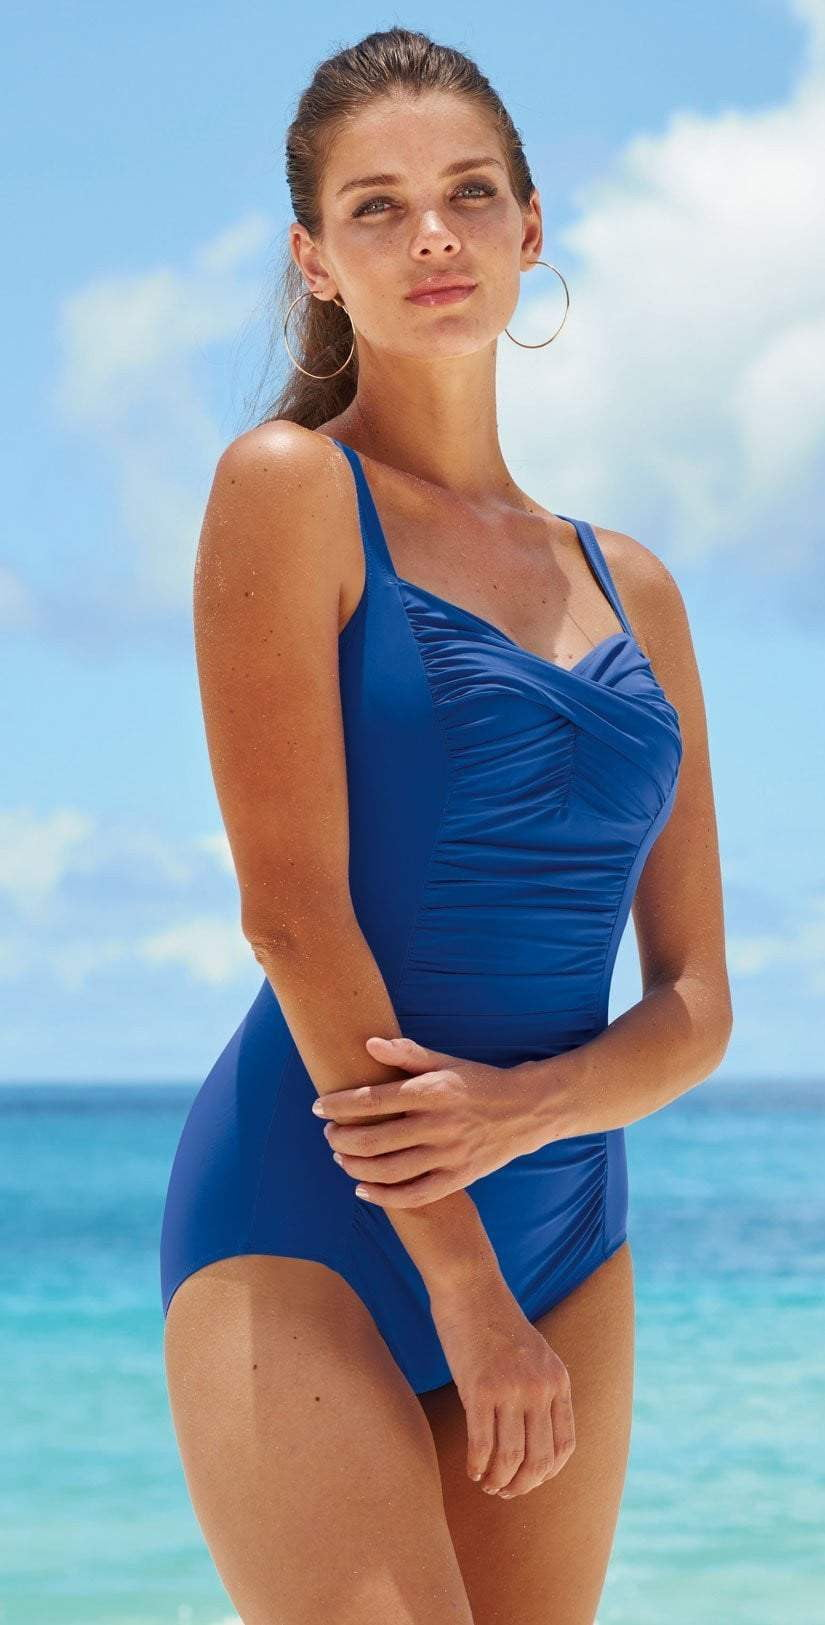 Anita Comfort Michelle One Piece Swimsuit in Blue 7370-354 front lifestyle